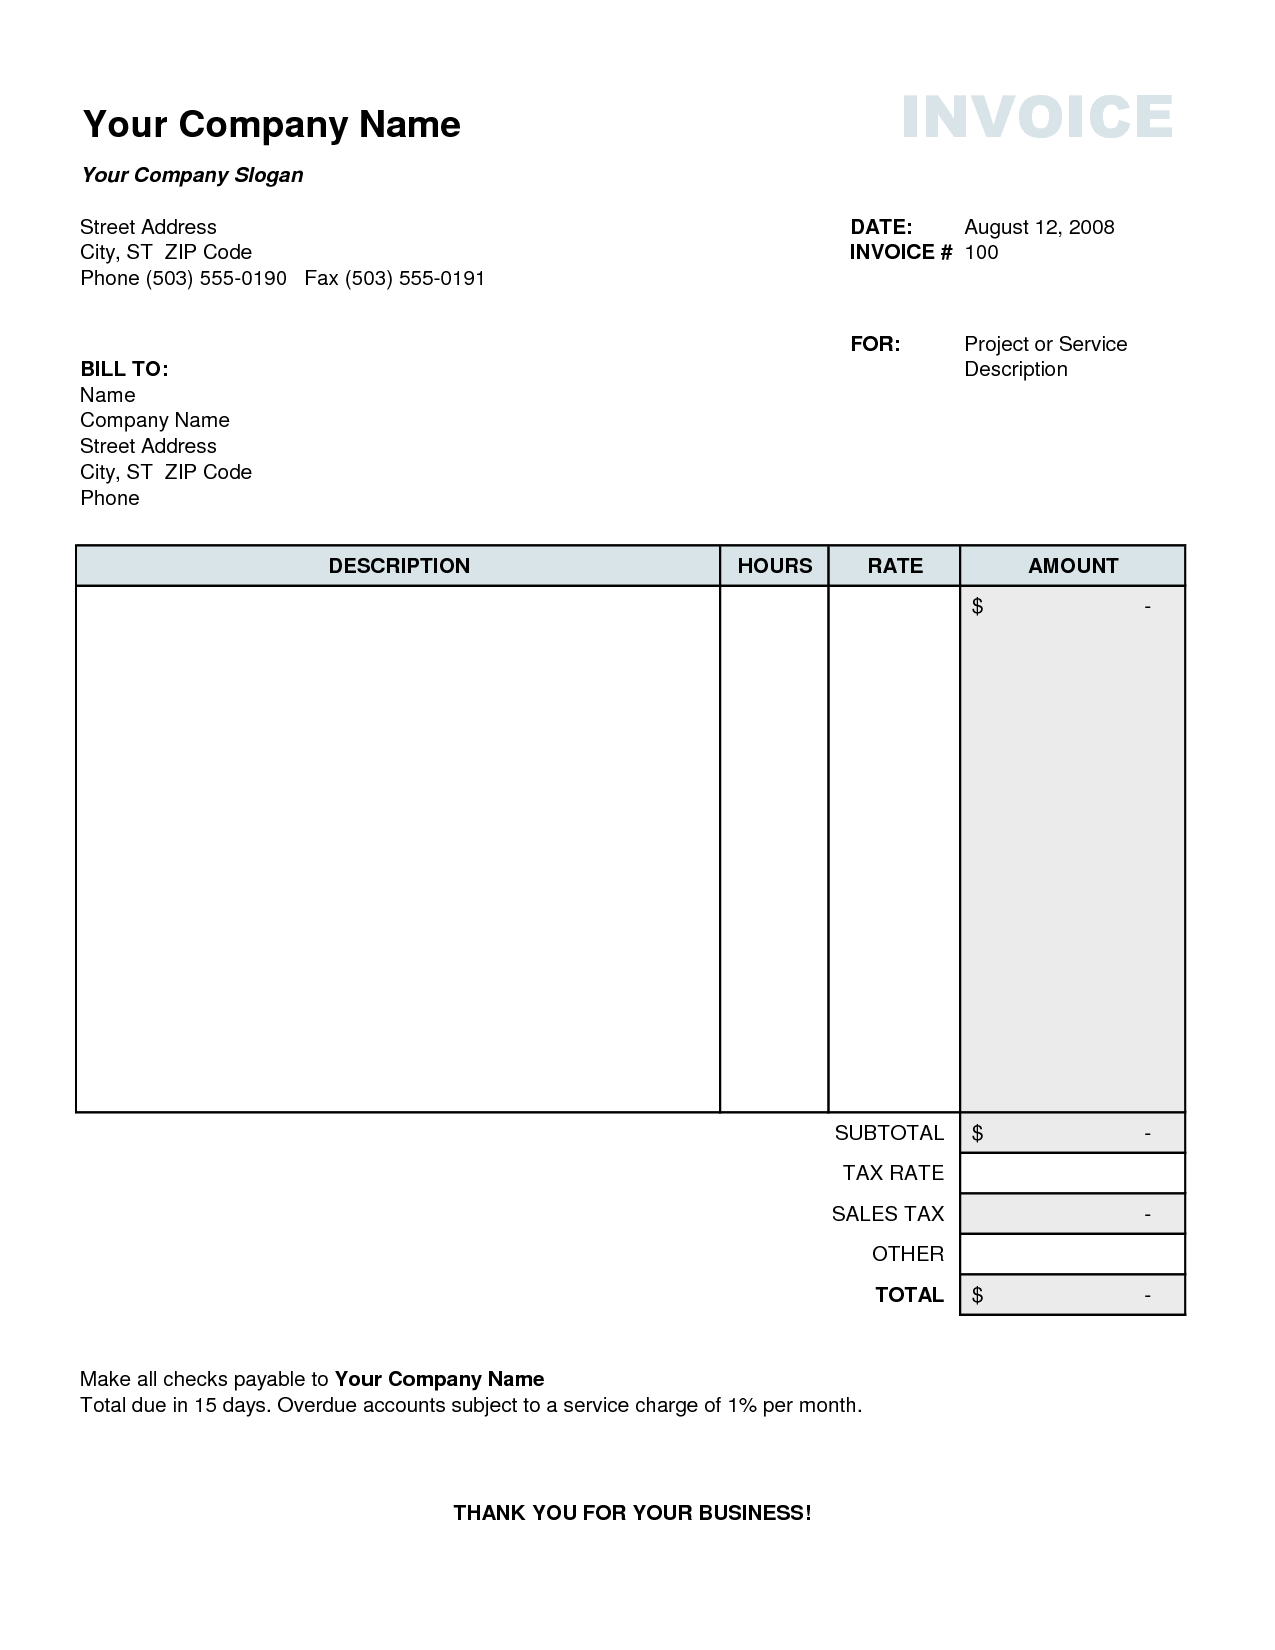 Invoice Template Excel Australia Kevincoynepagetk - Invoice example word for service business